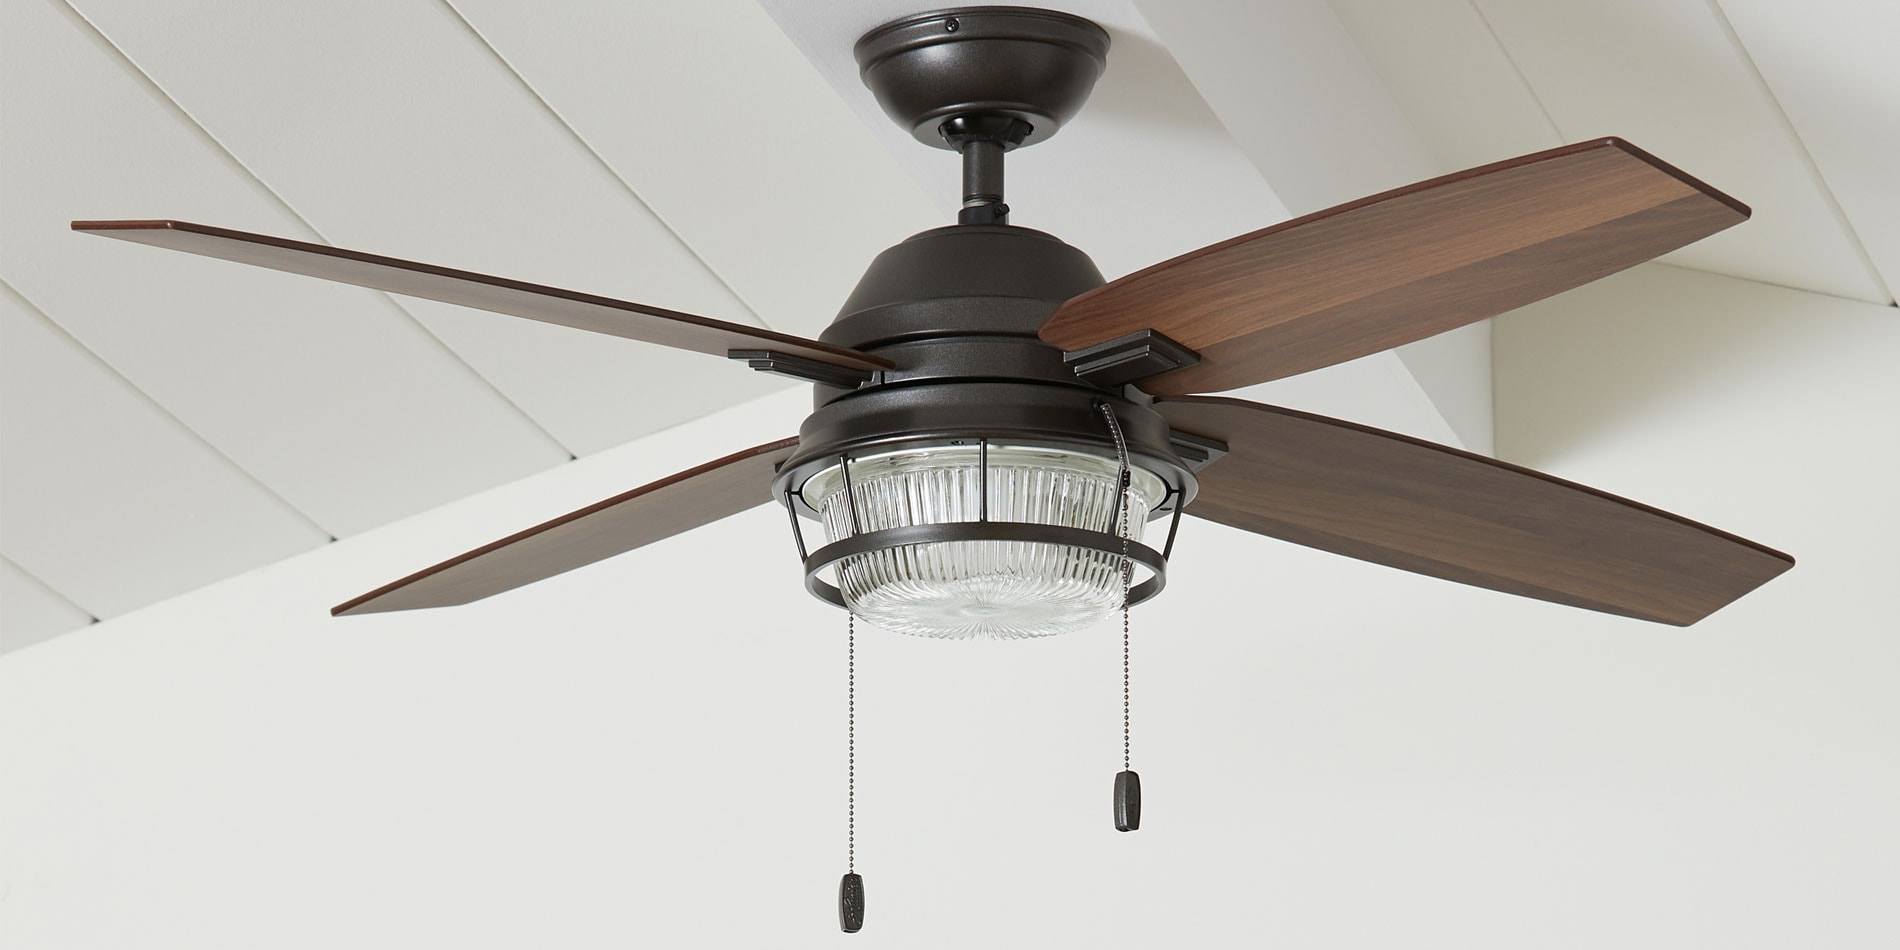 Buy Ceiling Fans Online At Our Best Lighting Deals Wiring 2 In Series